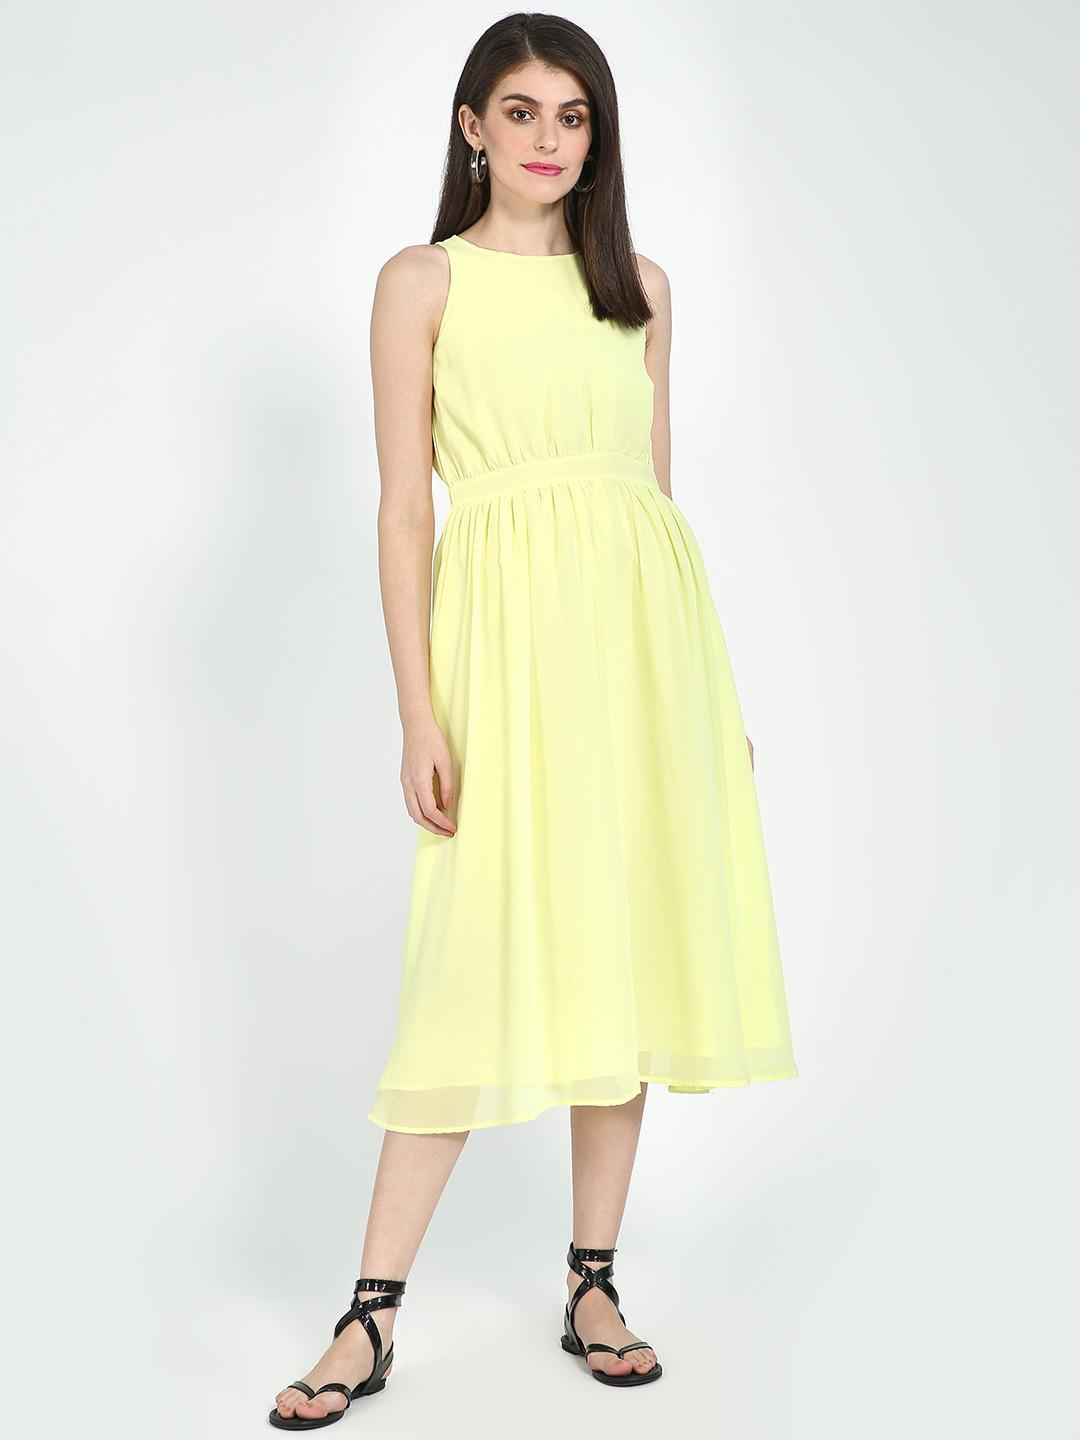 Blue Saint Yellow Basic Midi Dress 1